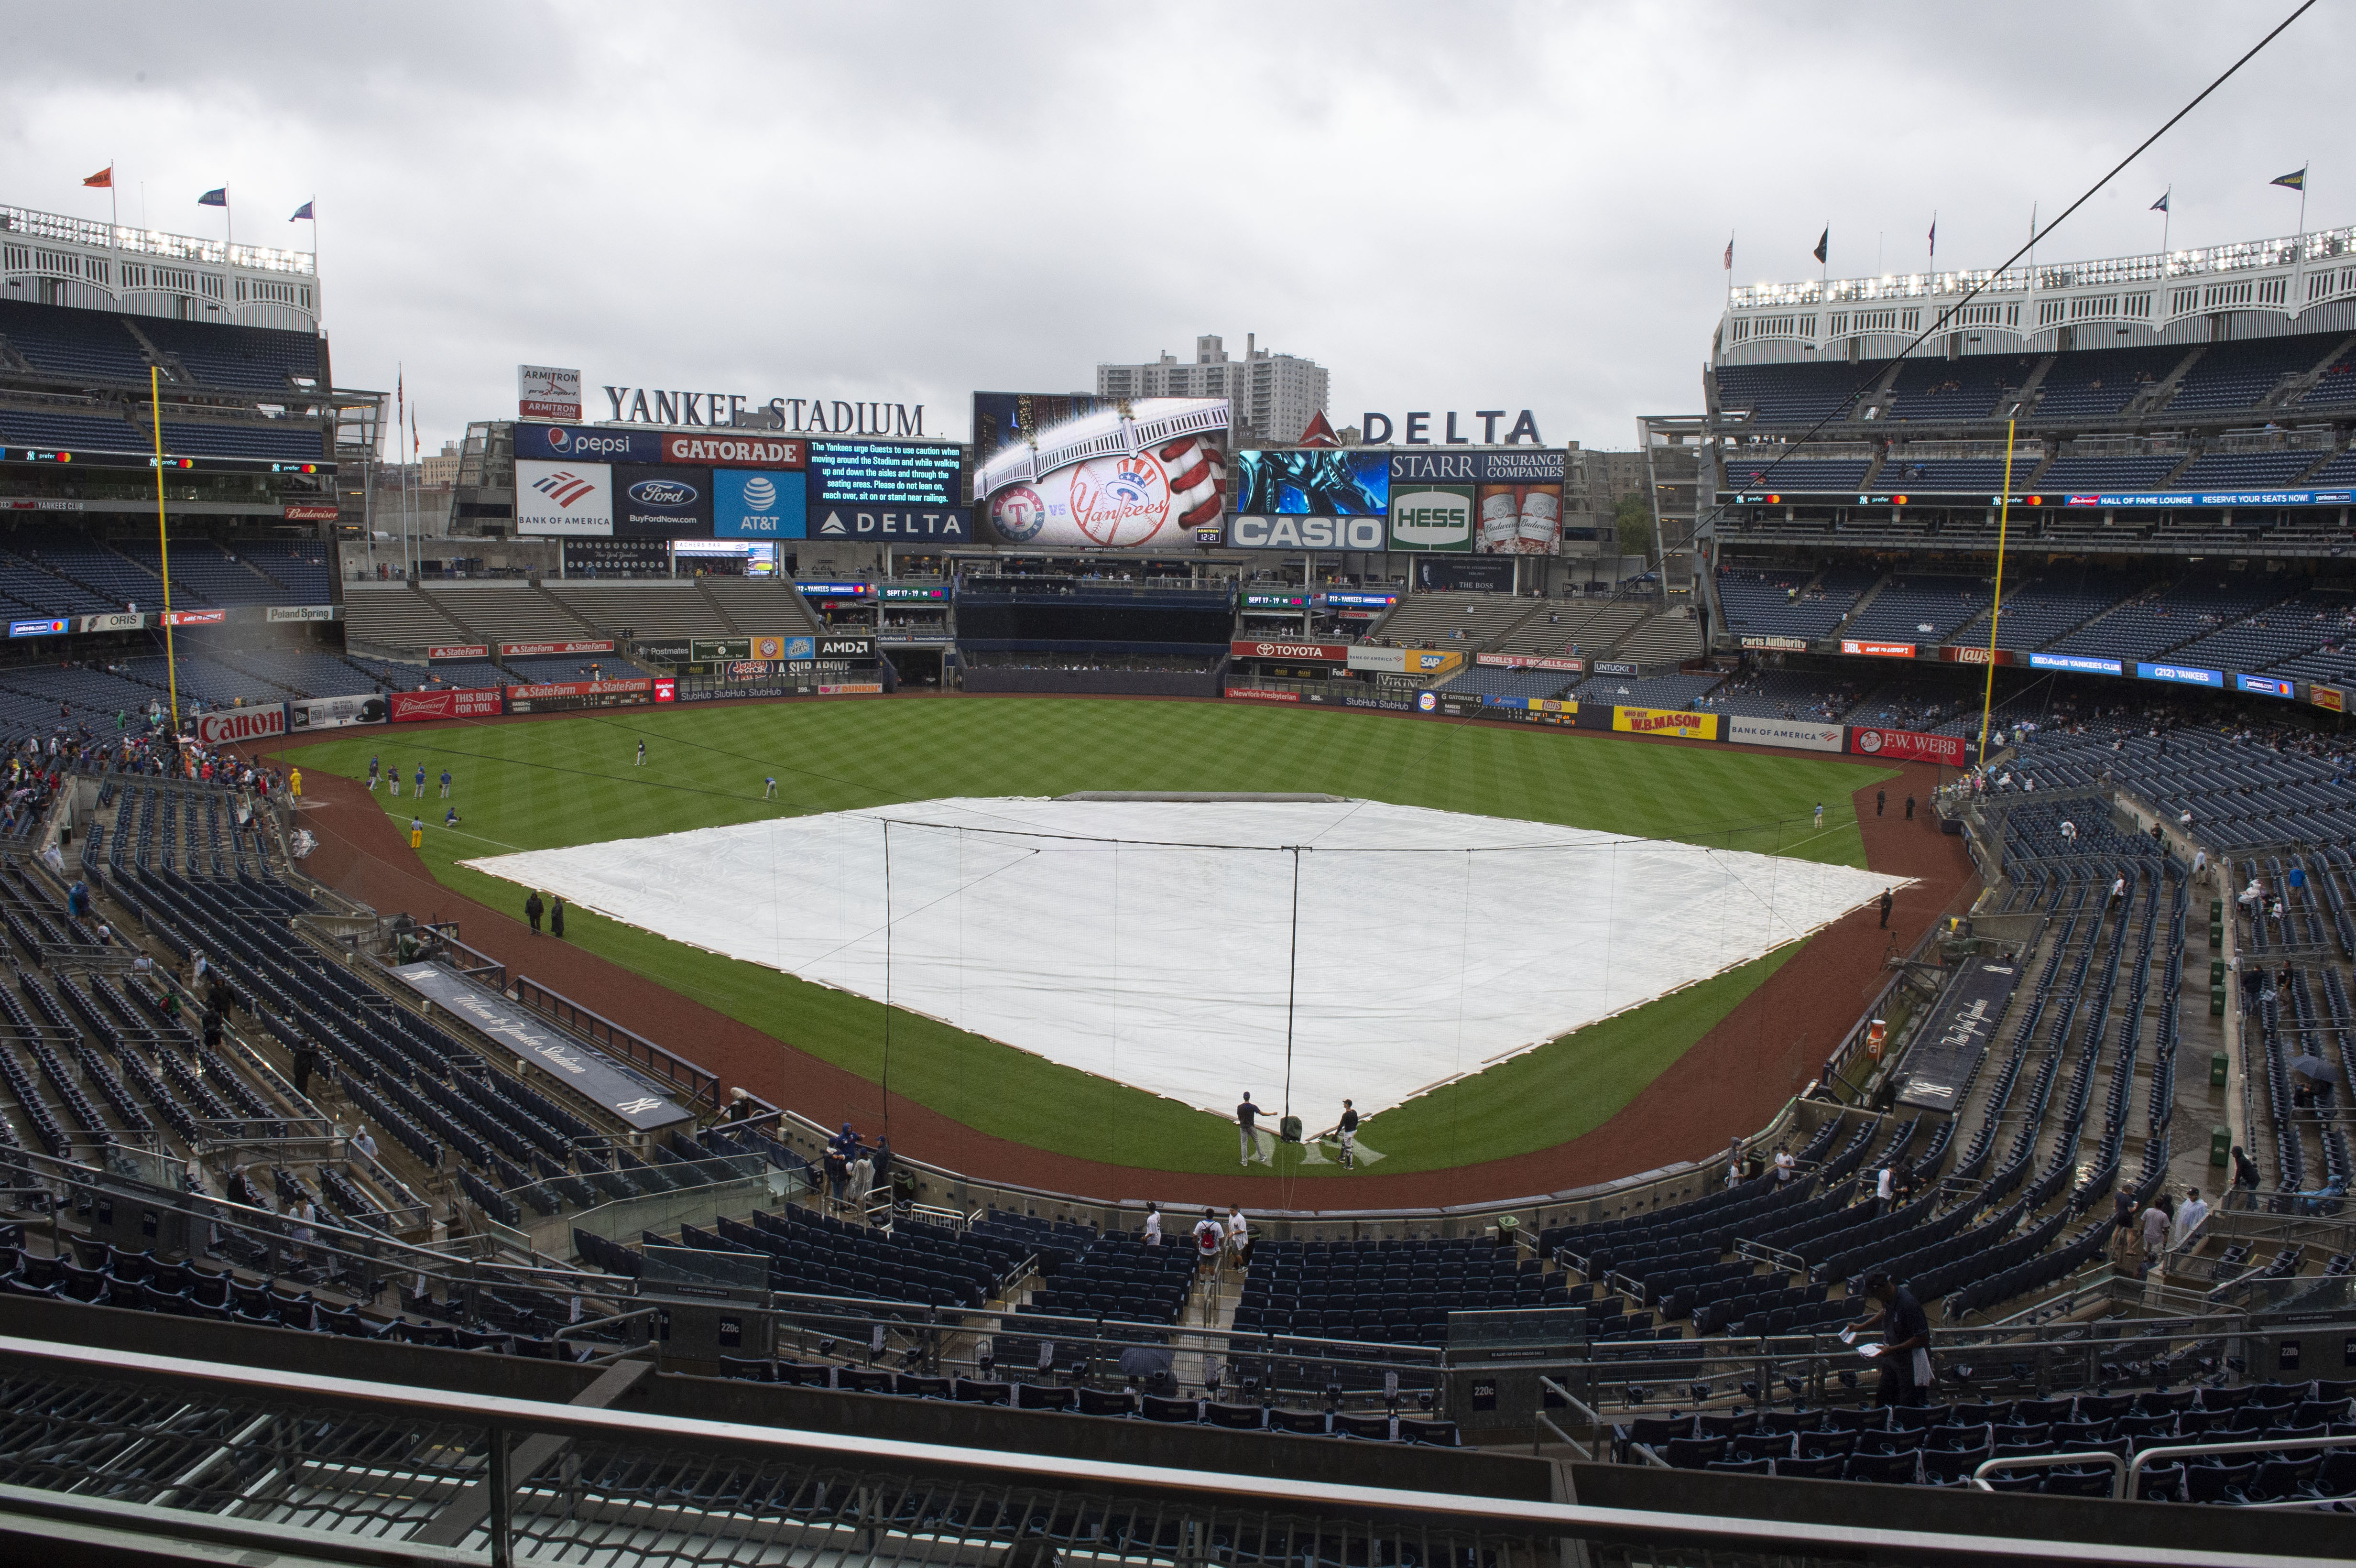 A general view of the field before the game between the Texas Rangers and the New York Yankees at Yankee Stadium.